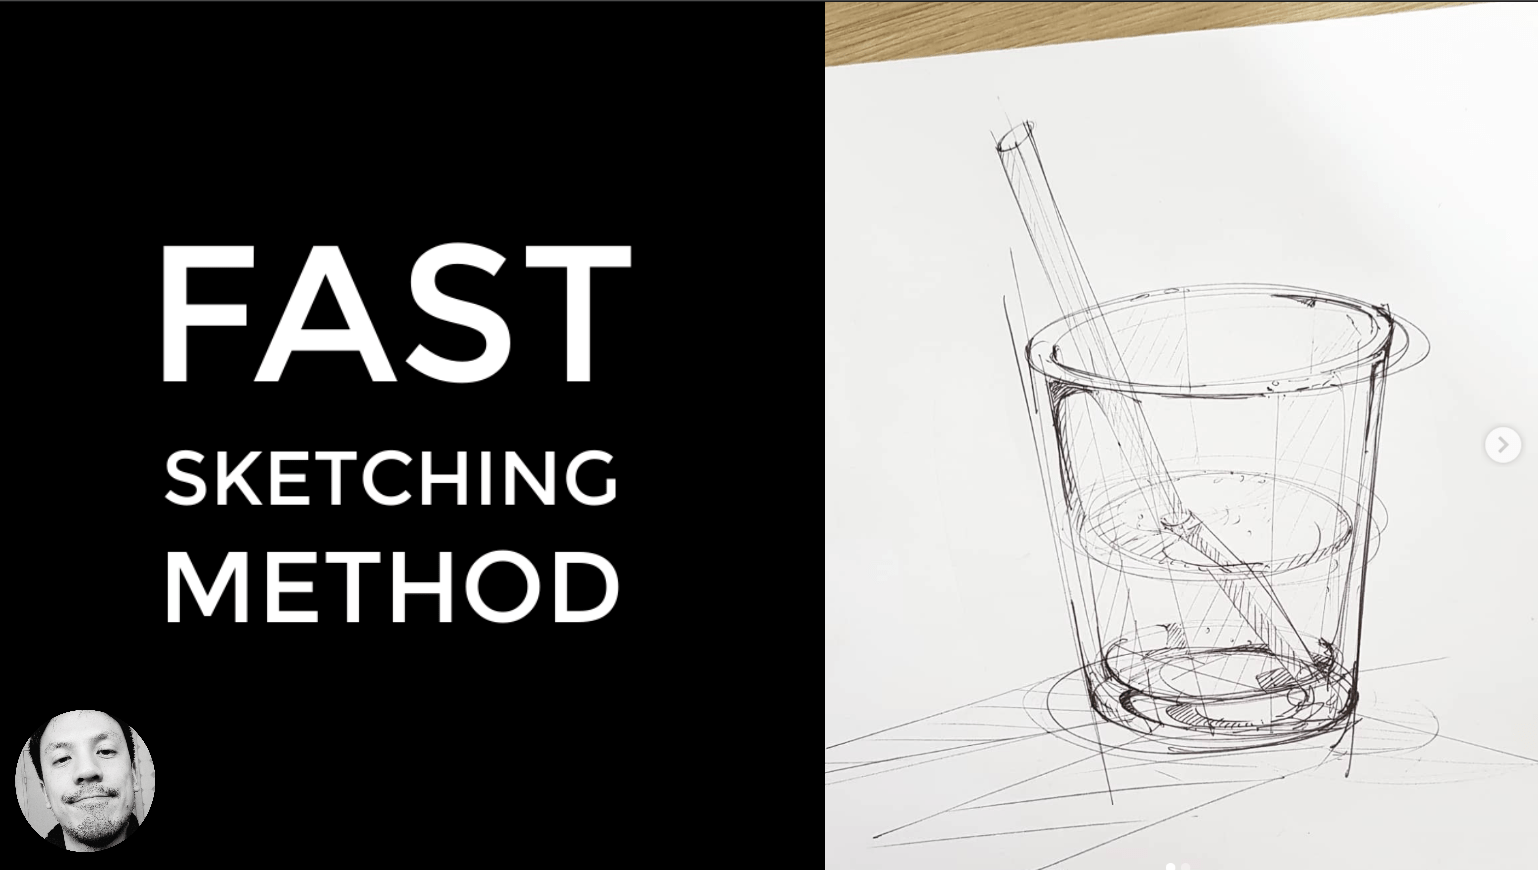 fast sketchinng method sketch the design sketchbook drawing hatching and rise your speed of sketching the design sketchbook chou tac chung a